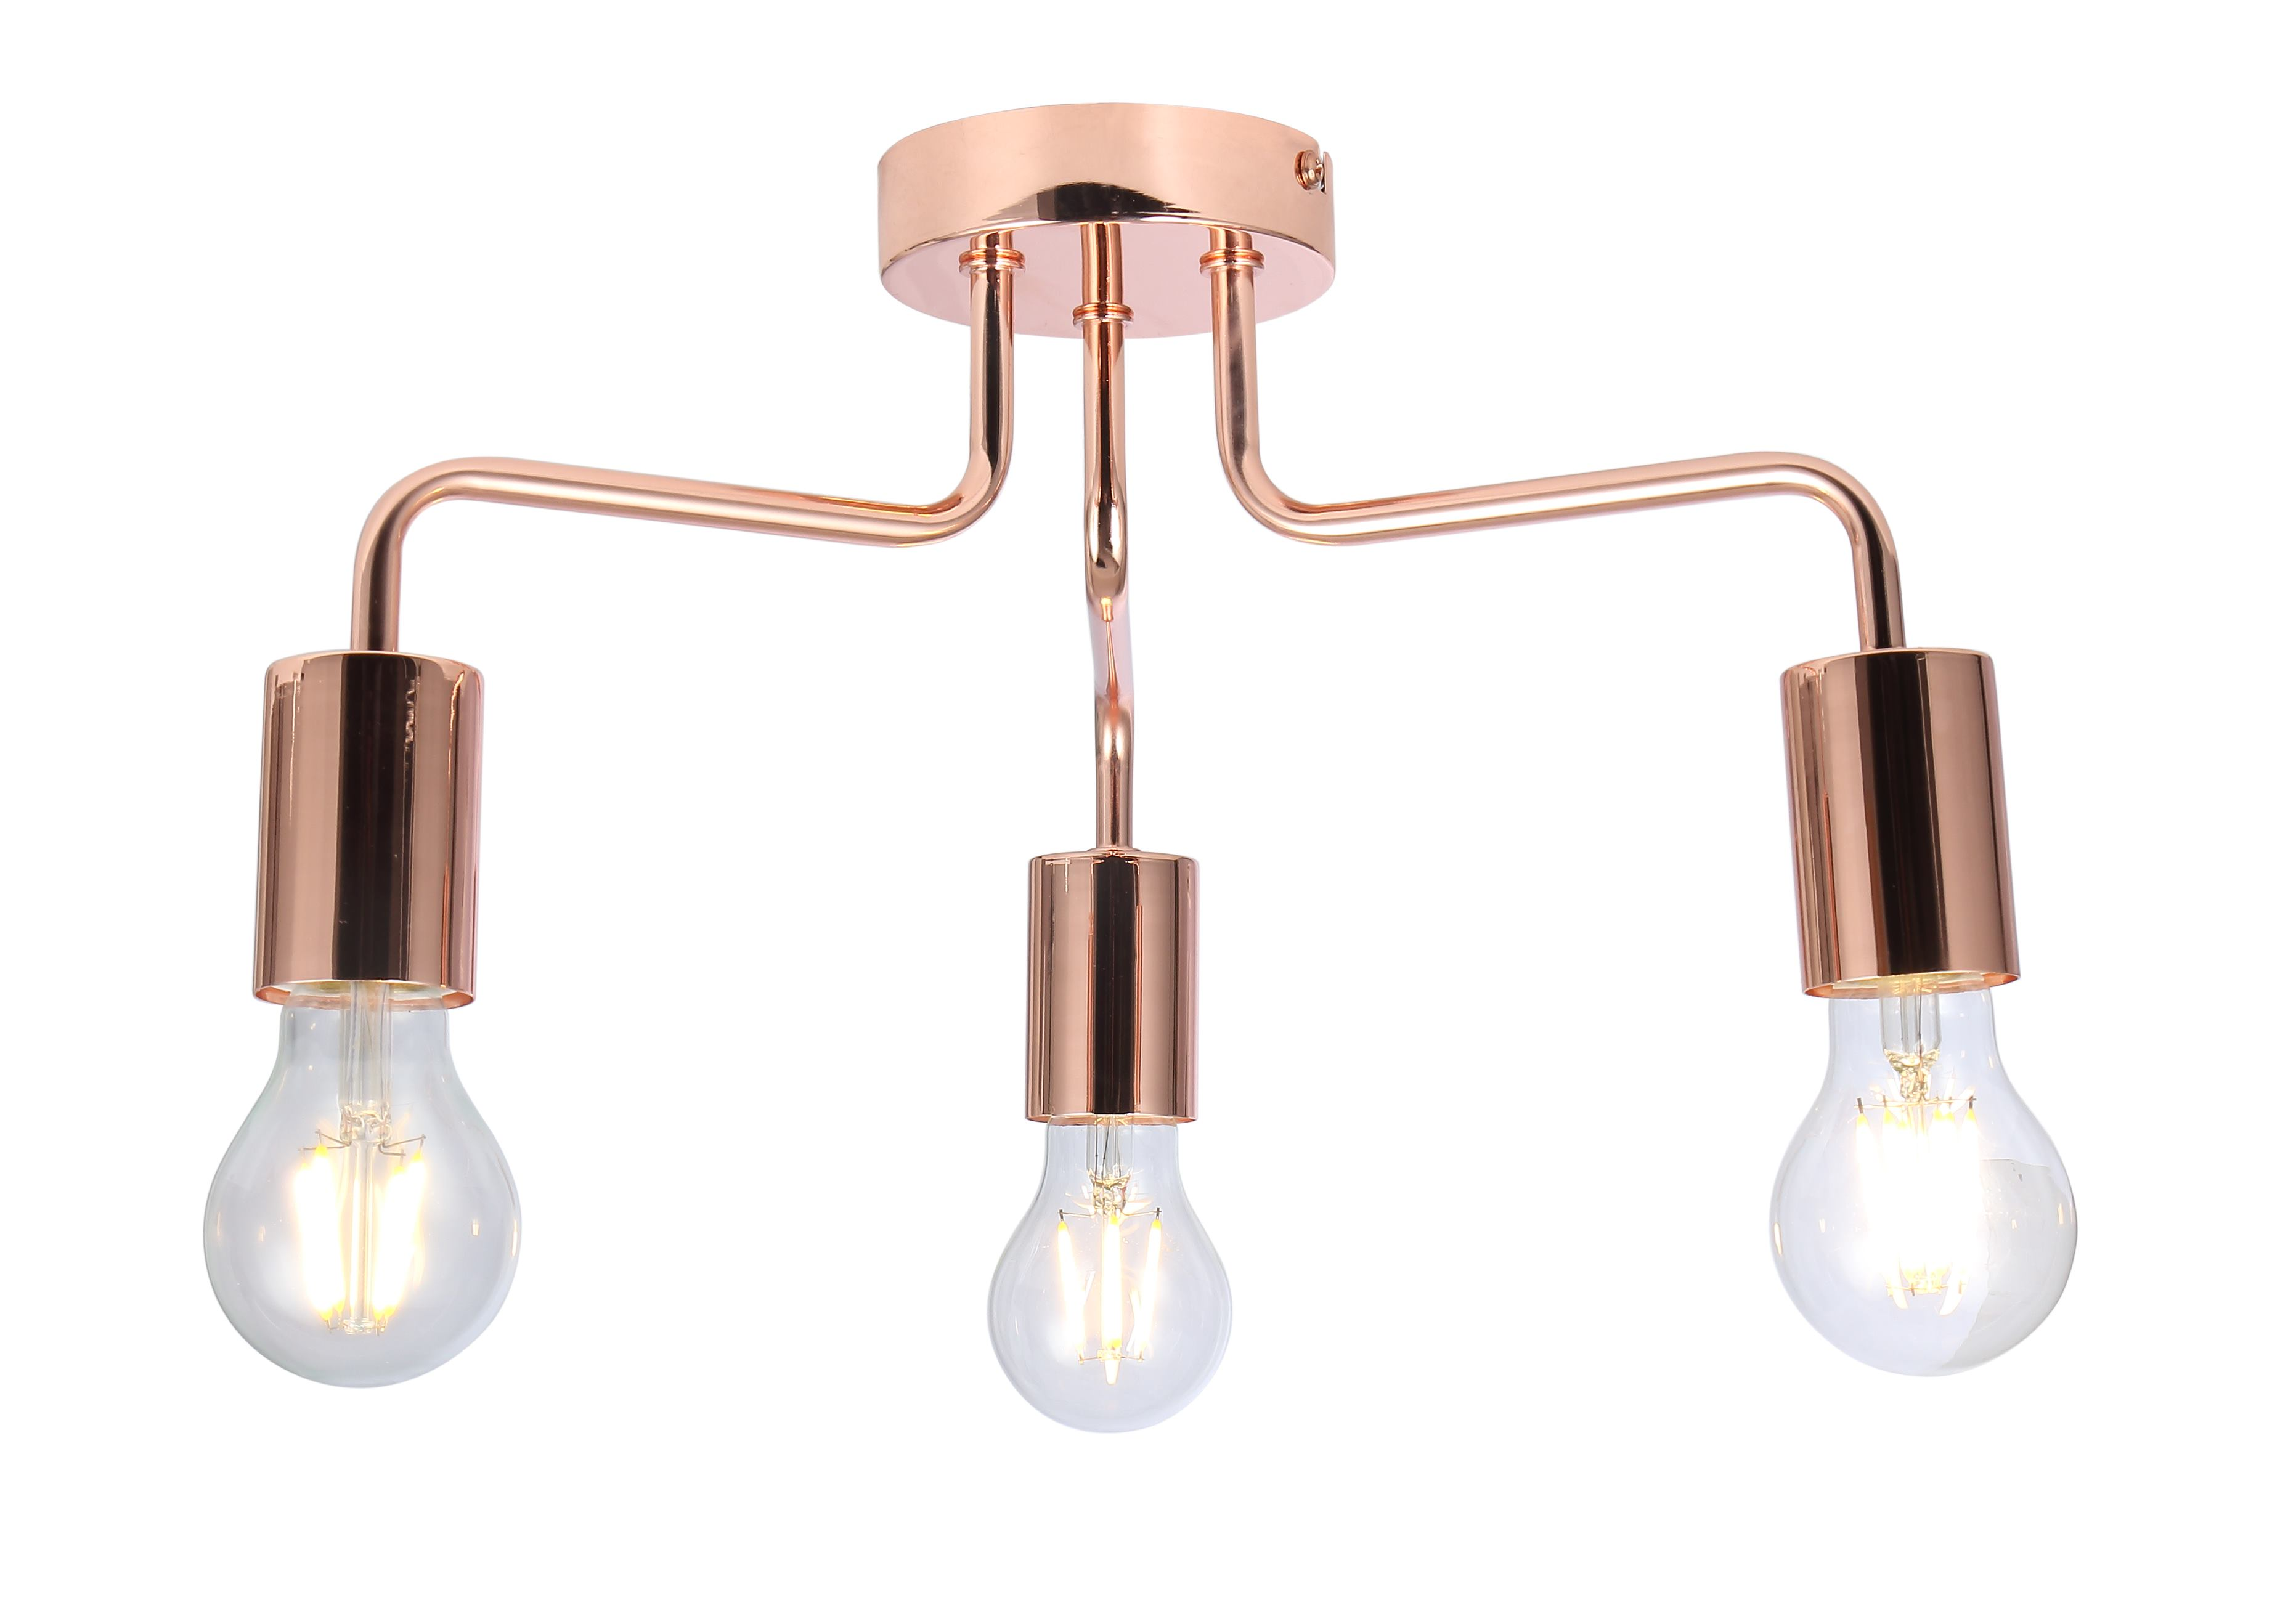 Picture of: Vintage 3 Way Arm Ceiling Light Flush Mount In Copper Finish